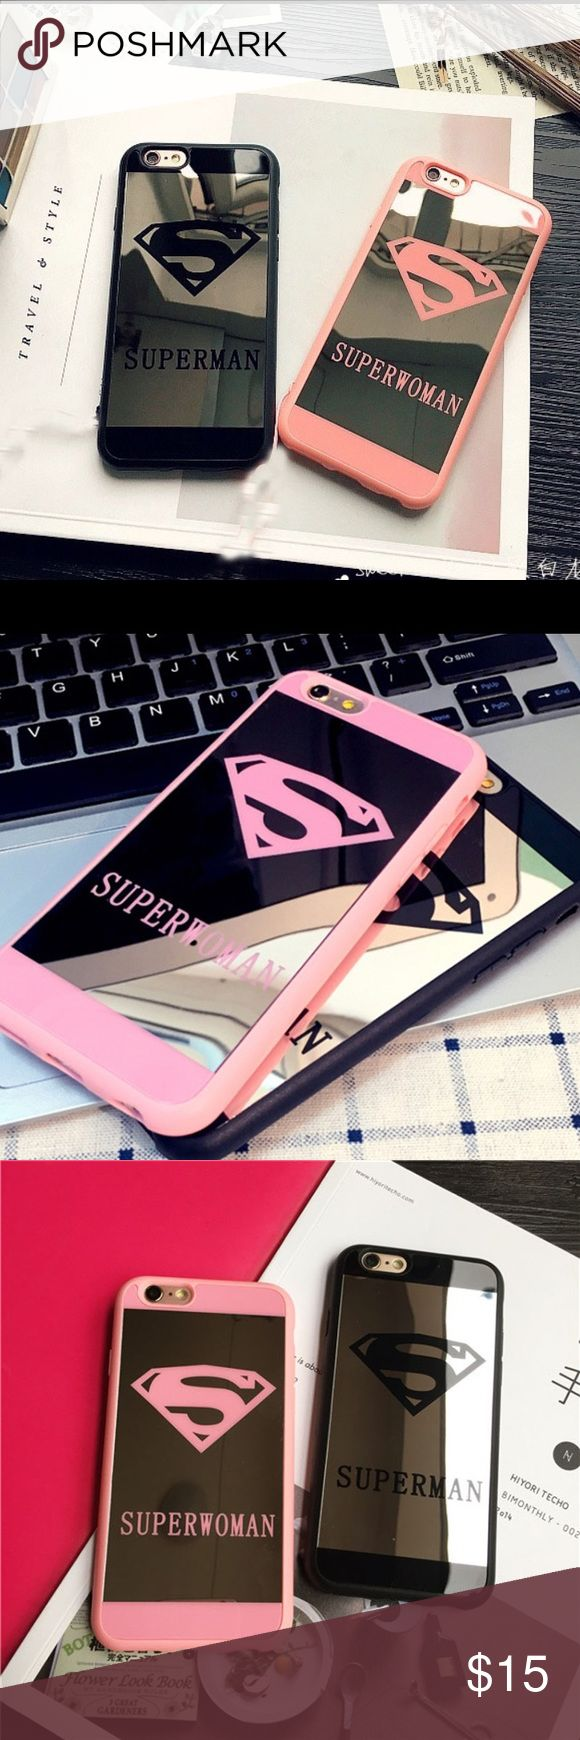 Pink iPhone 6 & black iPhone 7 case Brand new very protective! Accessories Phone Cases